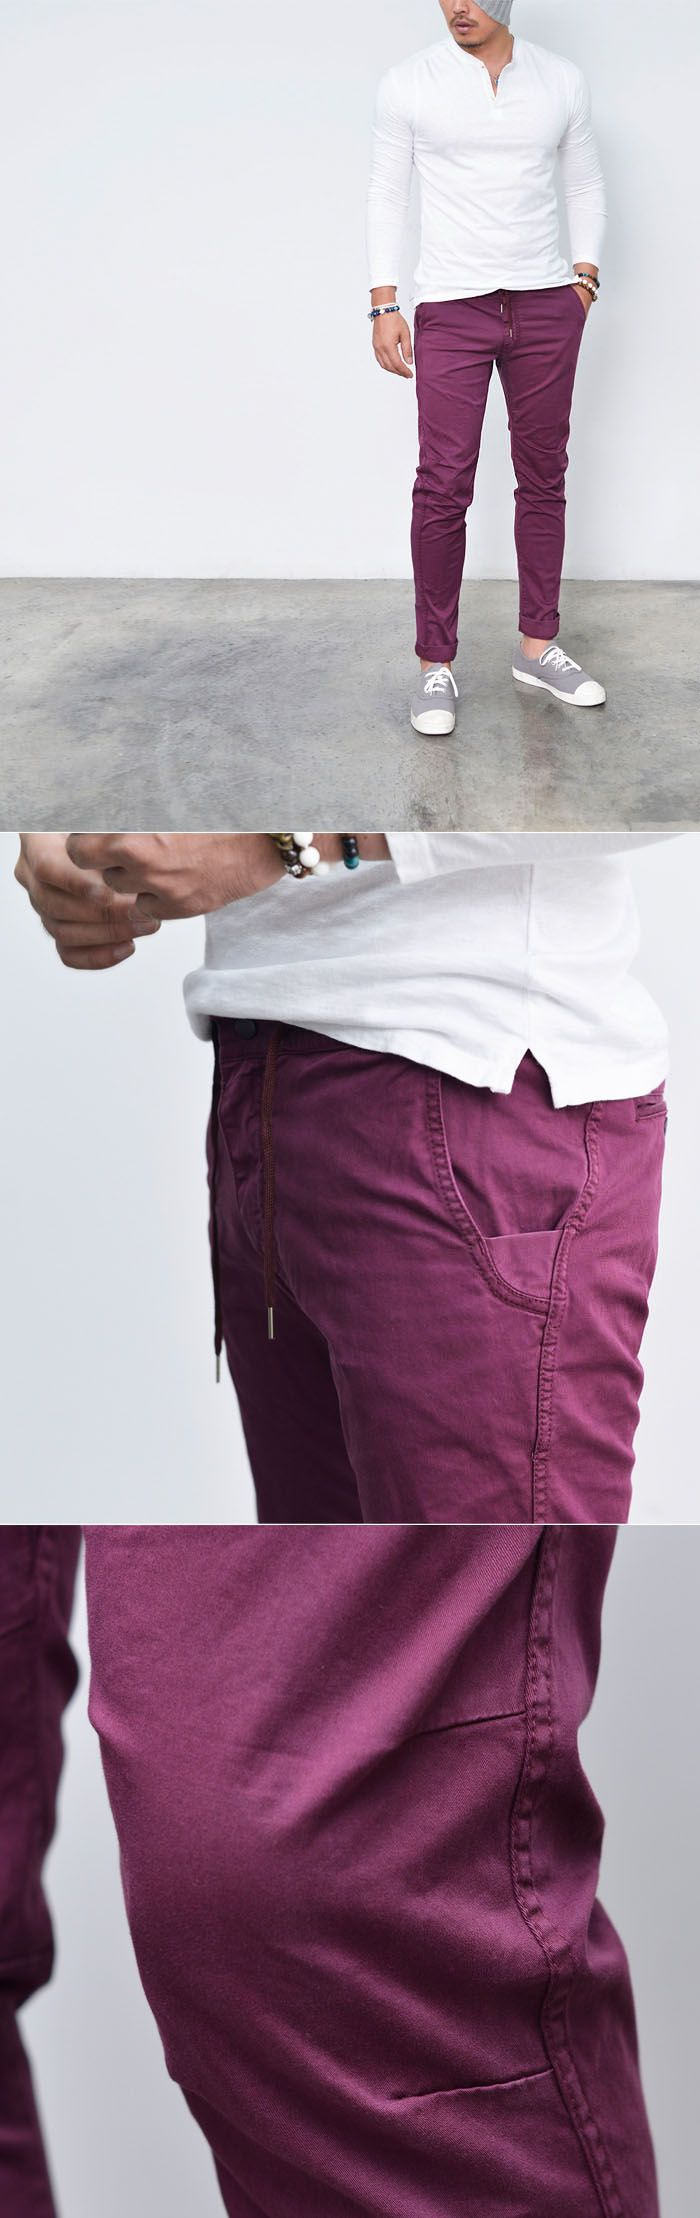 Bottoms :: Pigment Wash Slim Drawcord Slacks-Pants 194 - Mens Fashion Clothing For An Attractive Guy Look